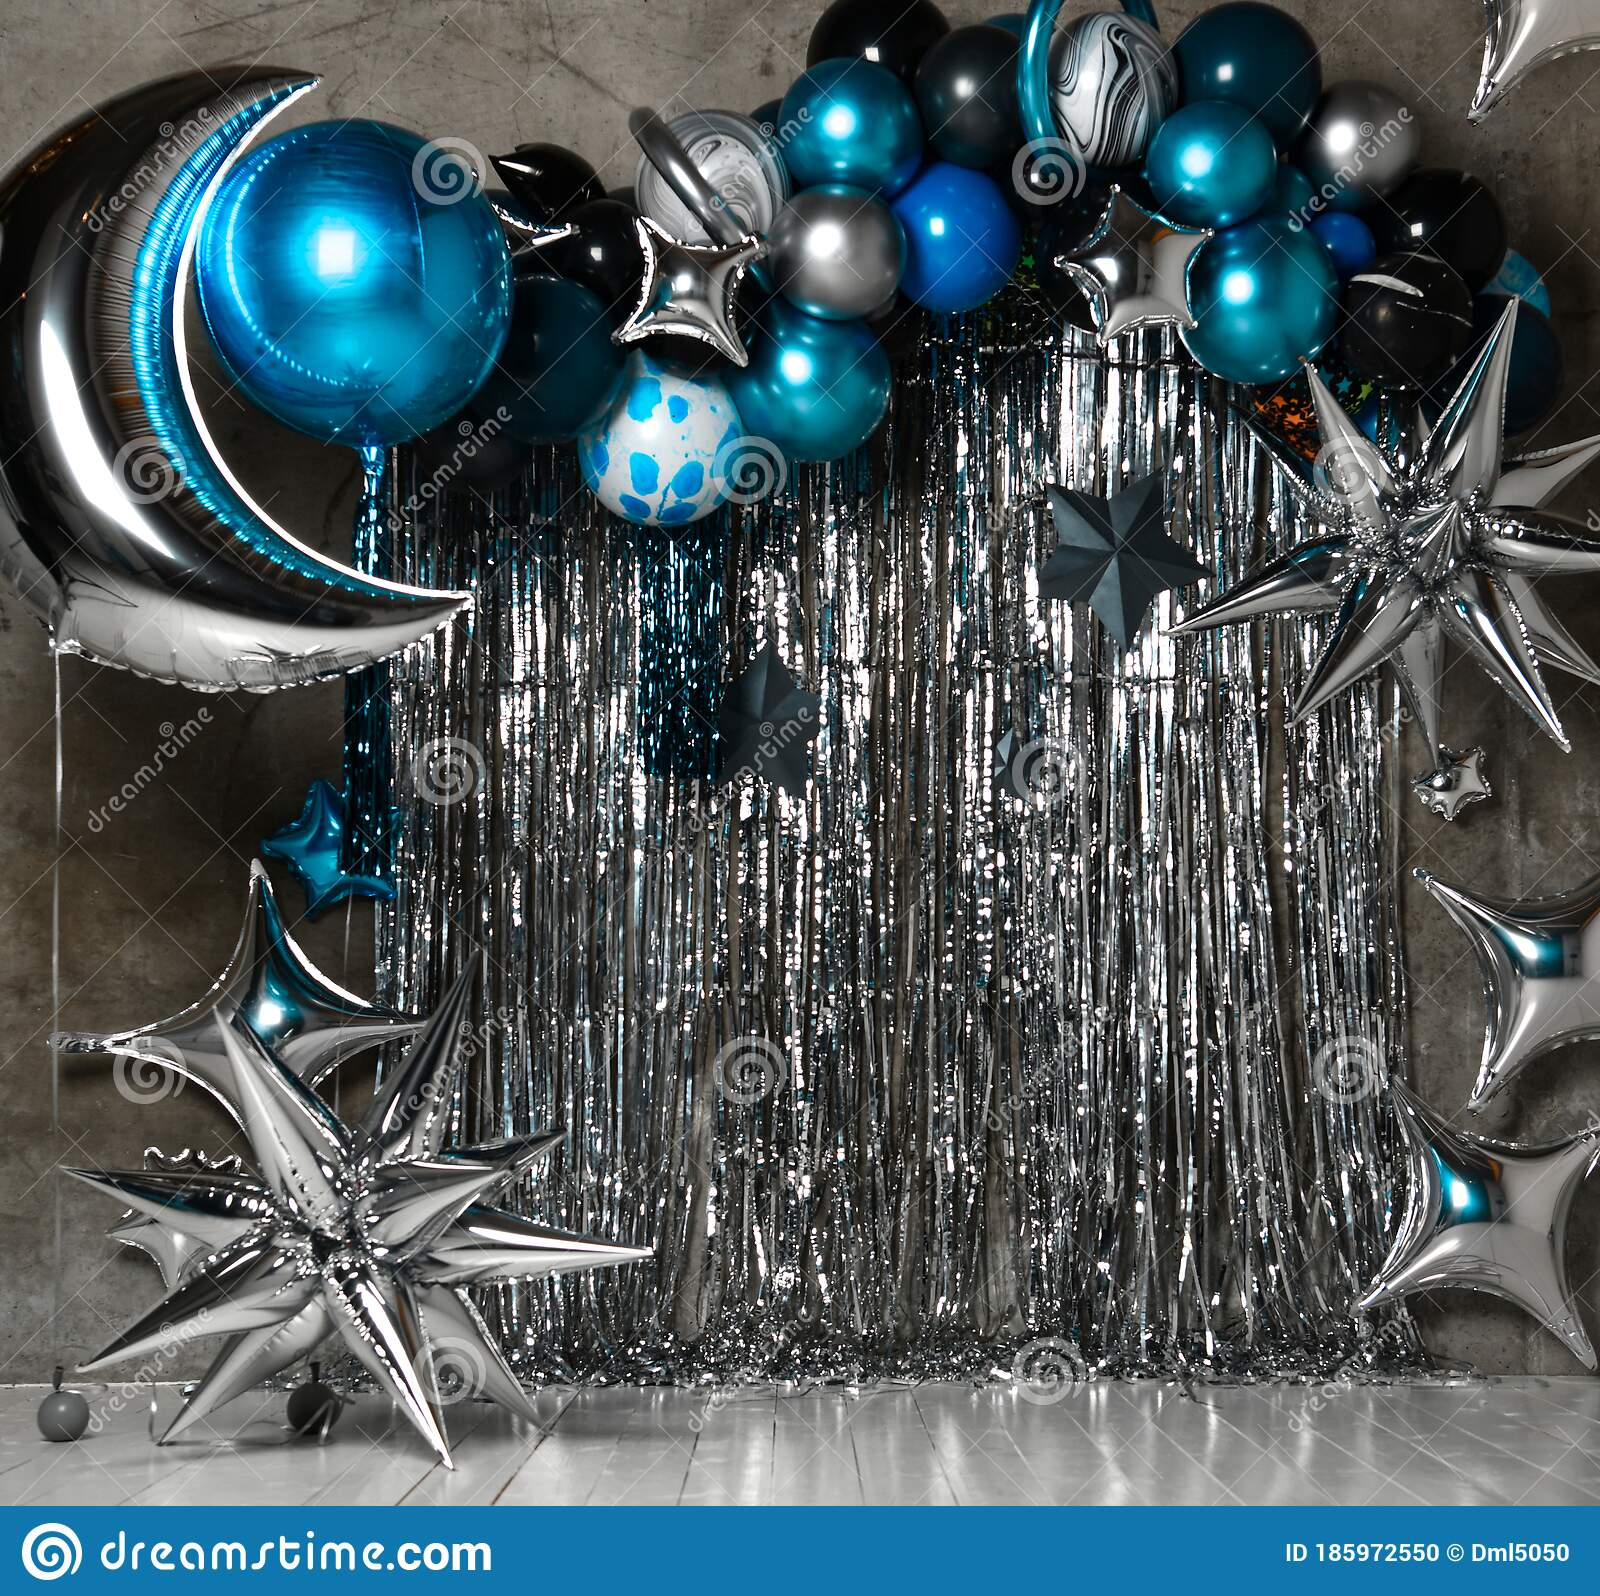 Space Photo Zone With Blue And Silver Stars Ballons Large For Birthday Decor Holiday Decoration Balloons Stock Photo Image Of Bright Decorative 185972550